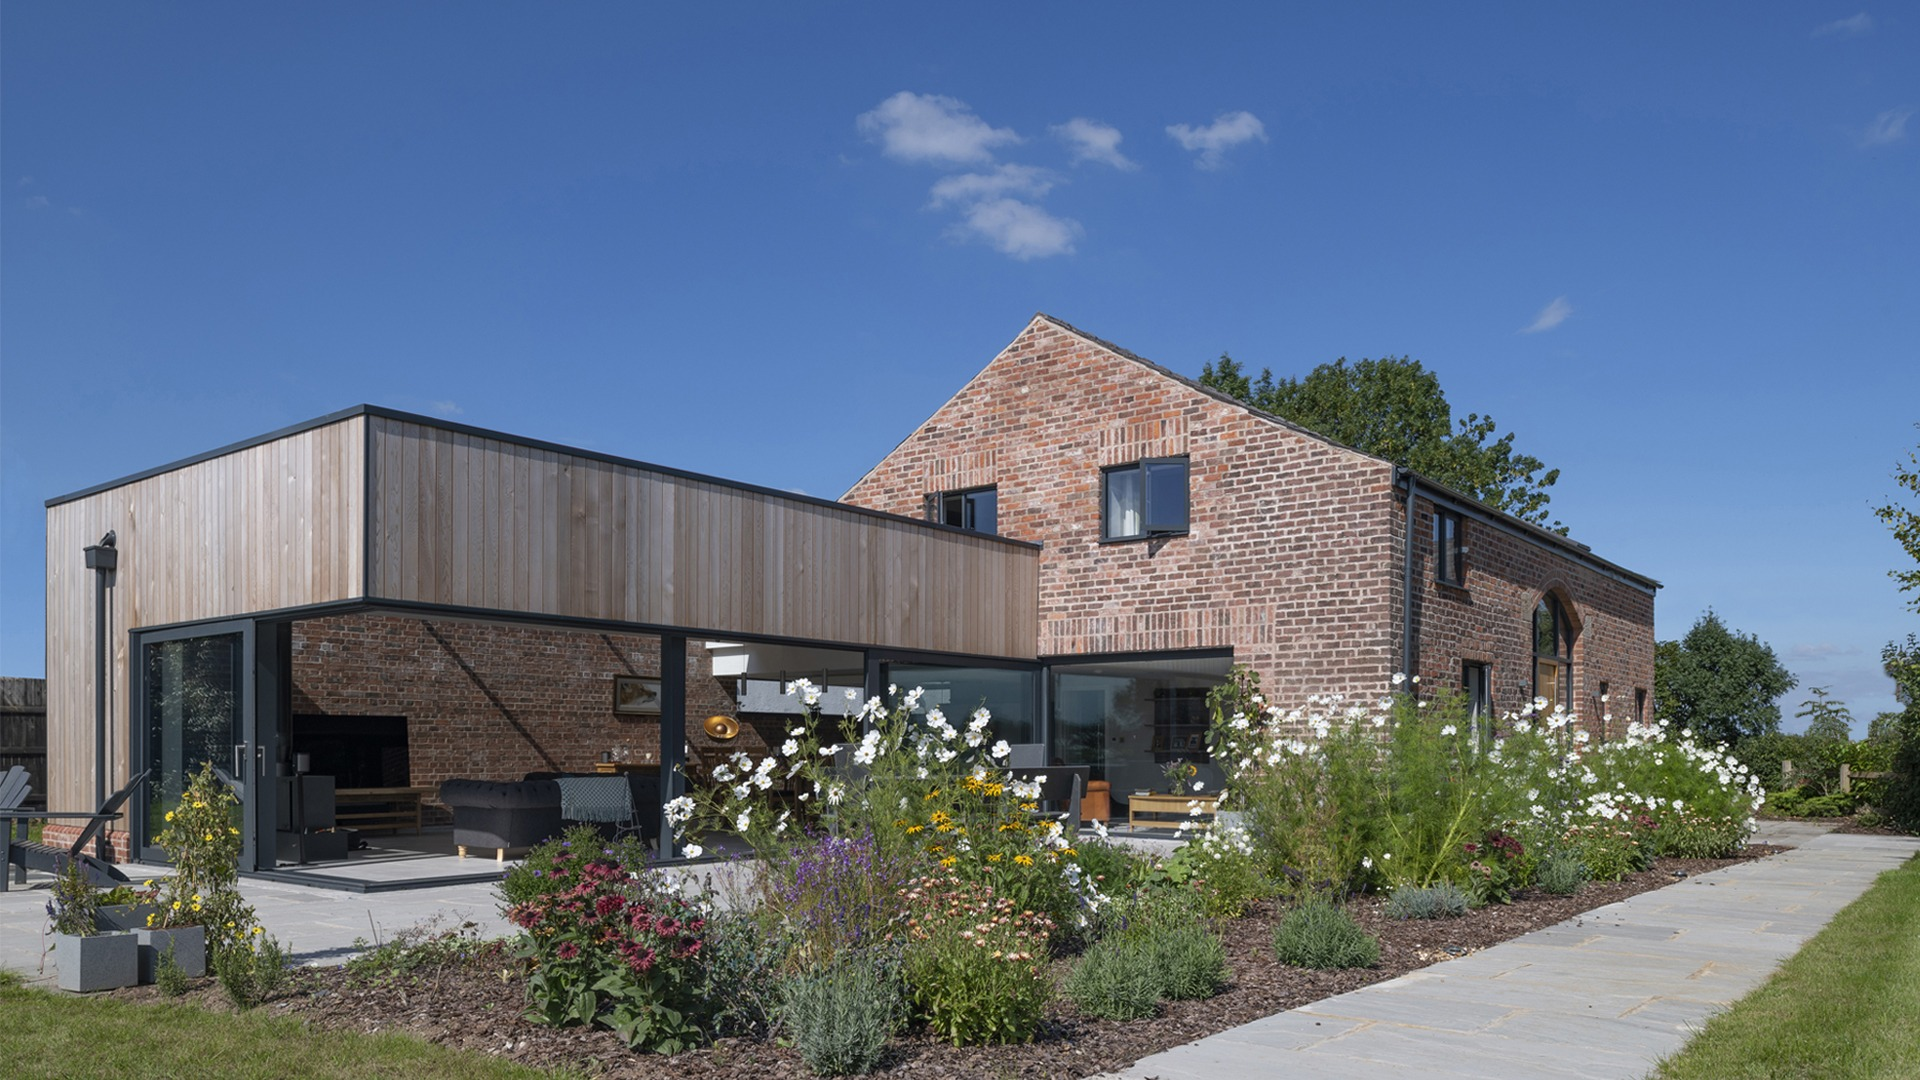 Converted barn in Woodplumpton - a Stanton Andrews project